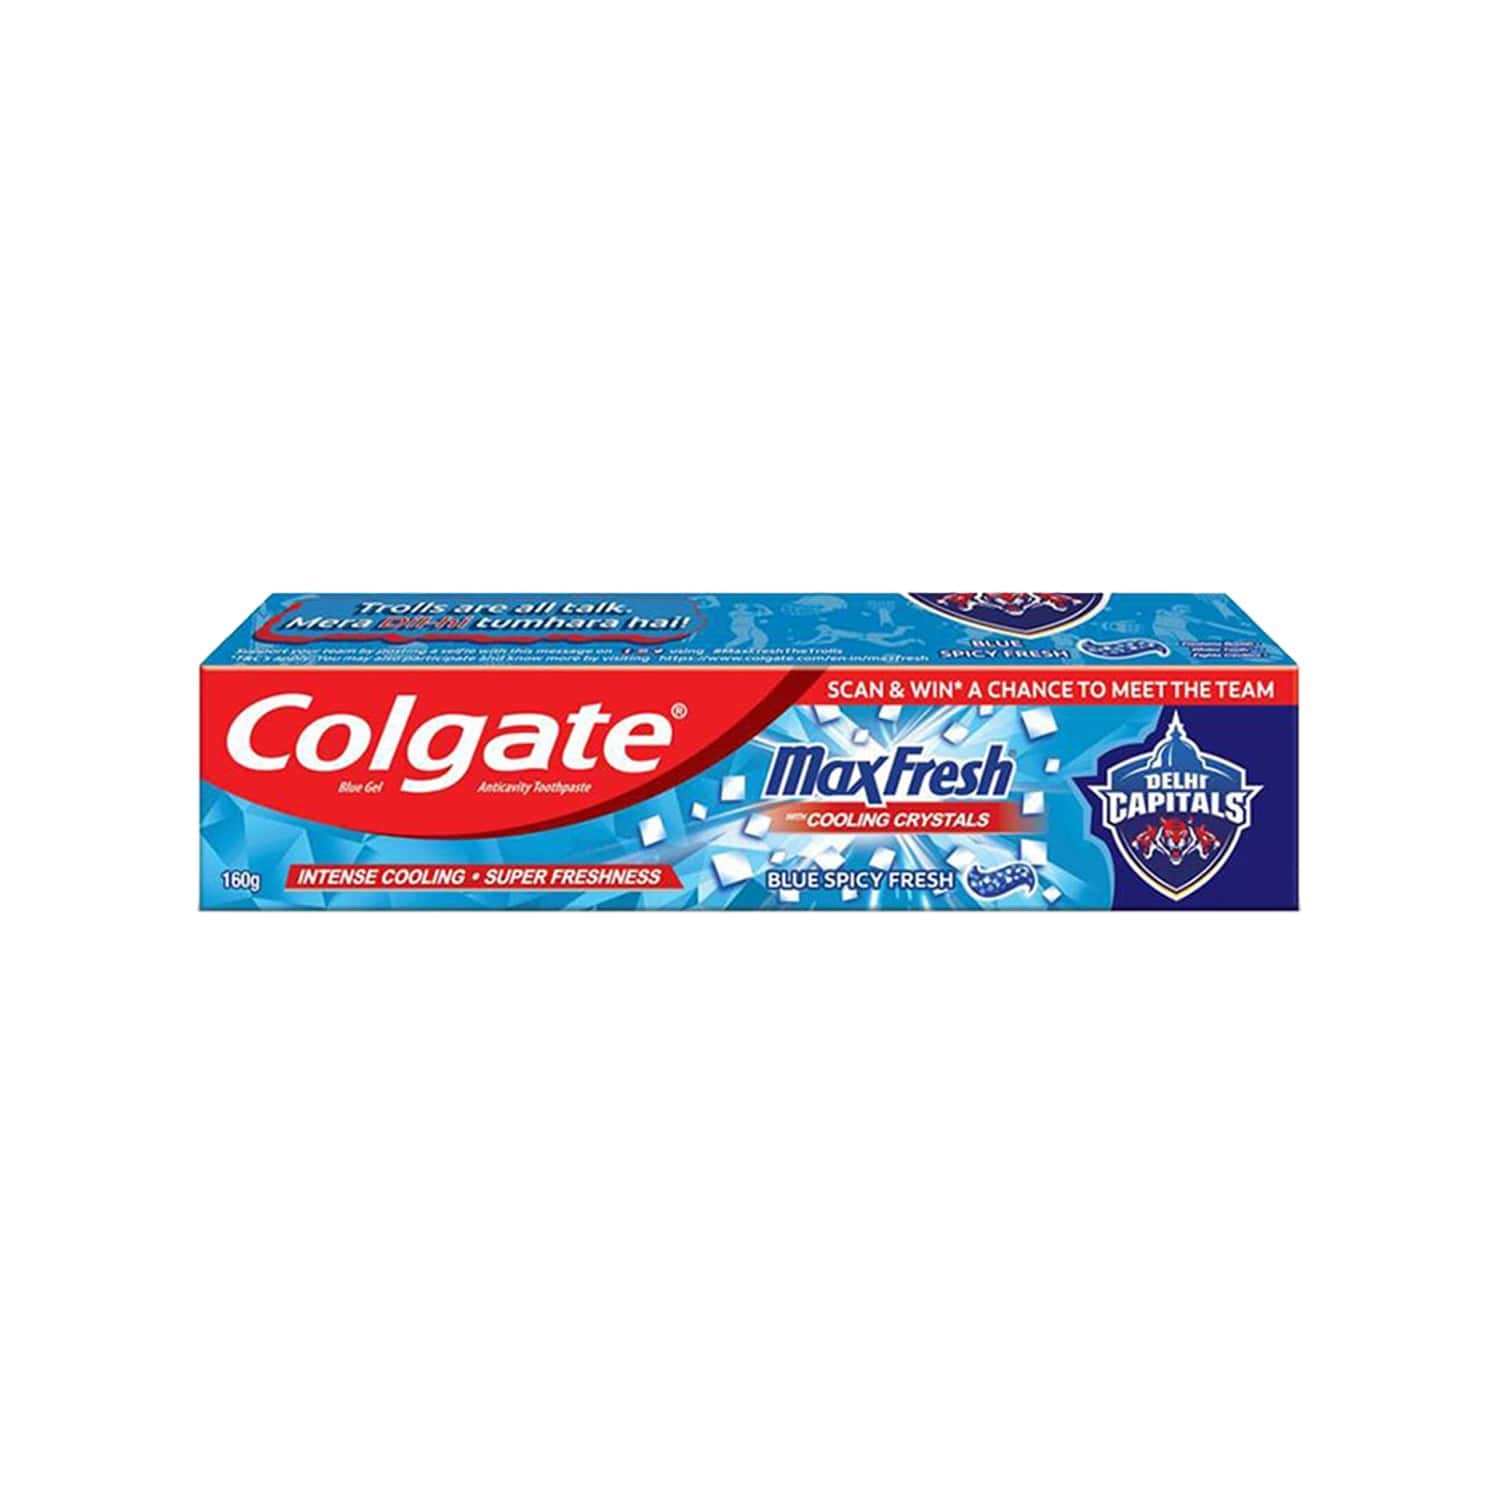 Colgate Maxfresh Blue Spicy Fresh Gel Toothpaste - 160 Gm - Delhi Capitals Special Edition Pack